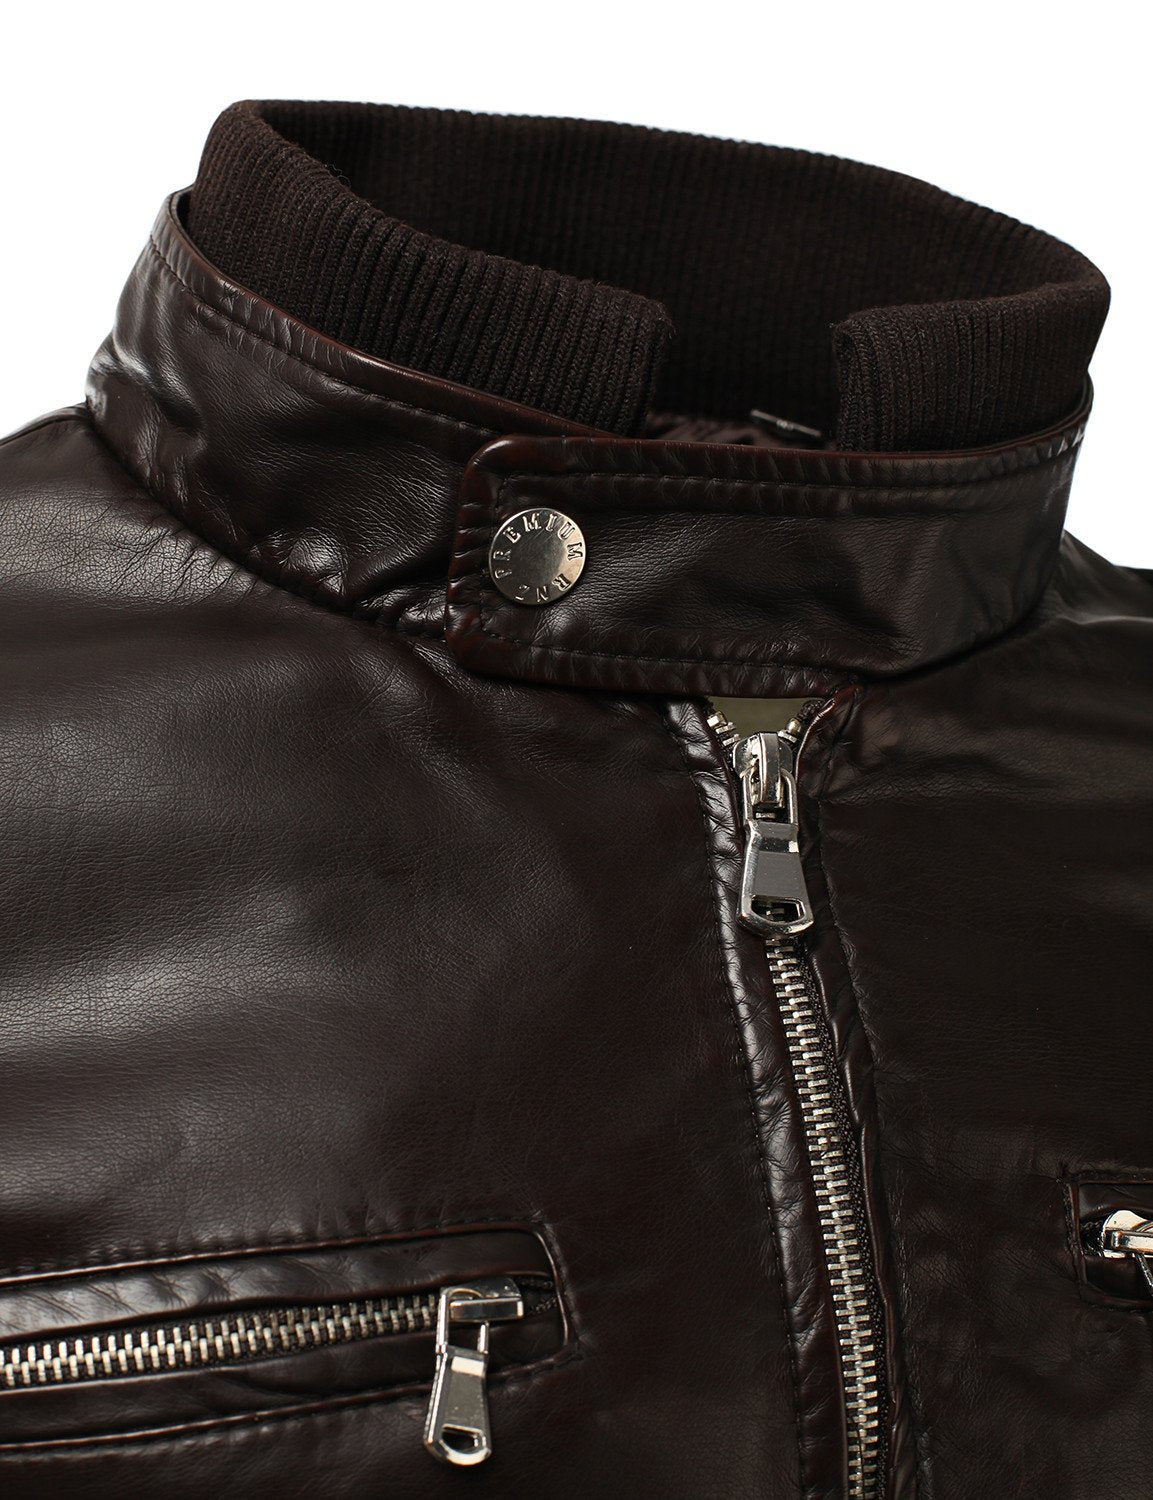 BROWN PU Leather Zippered Hooded Jacket - MONDAYSUIT